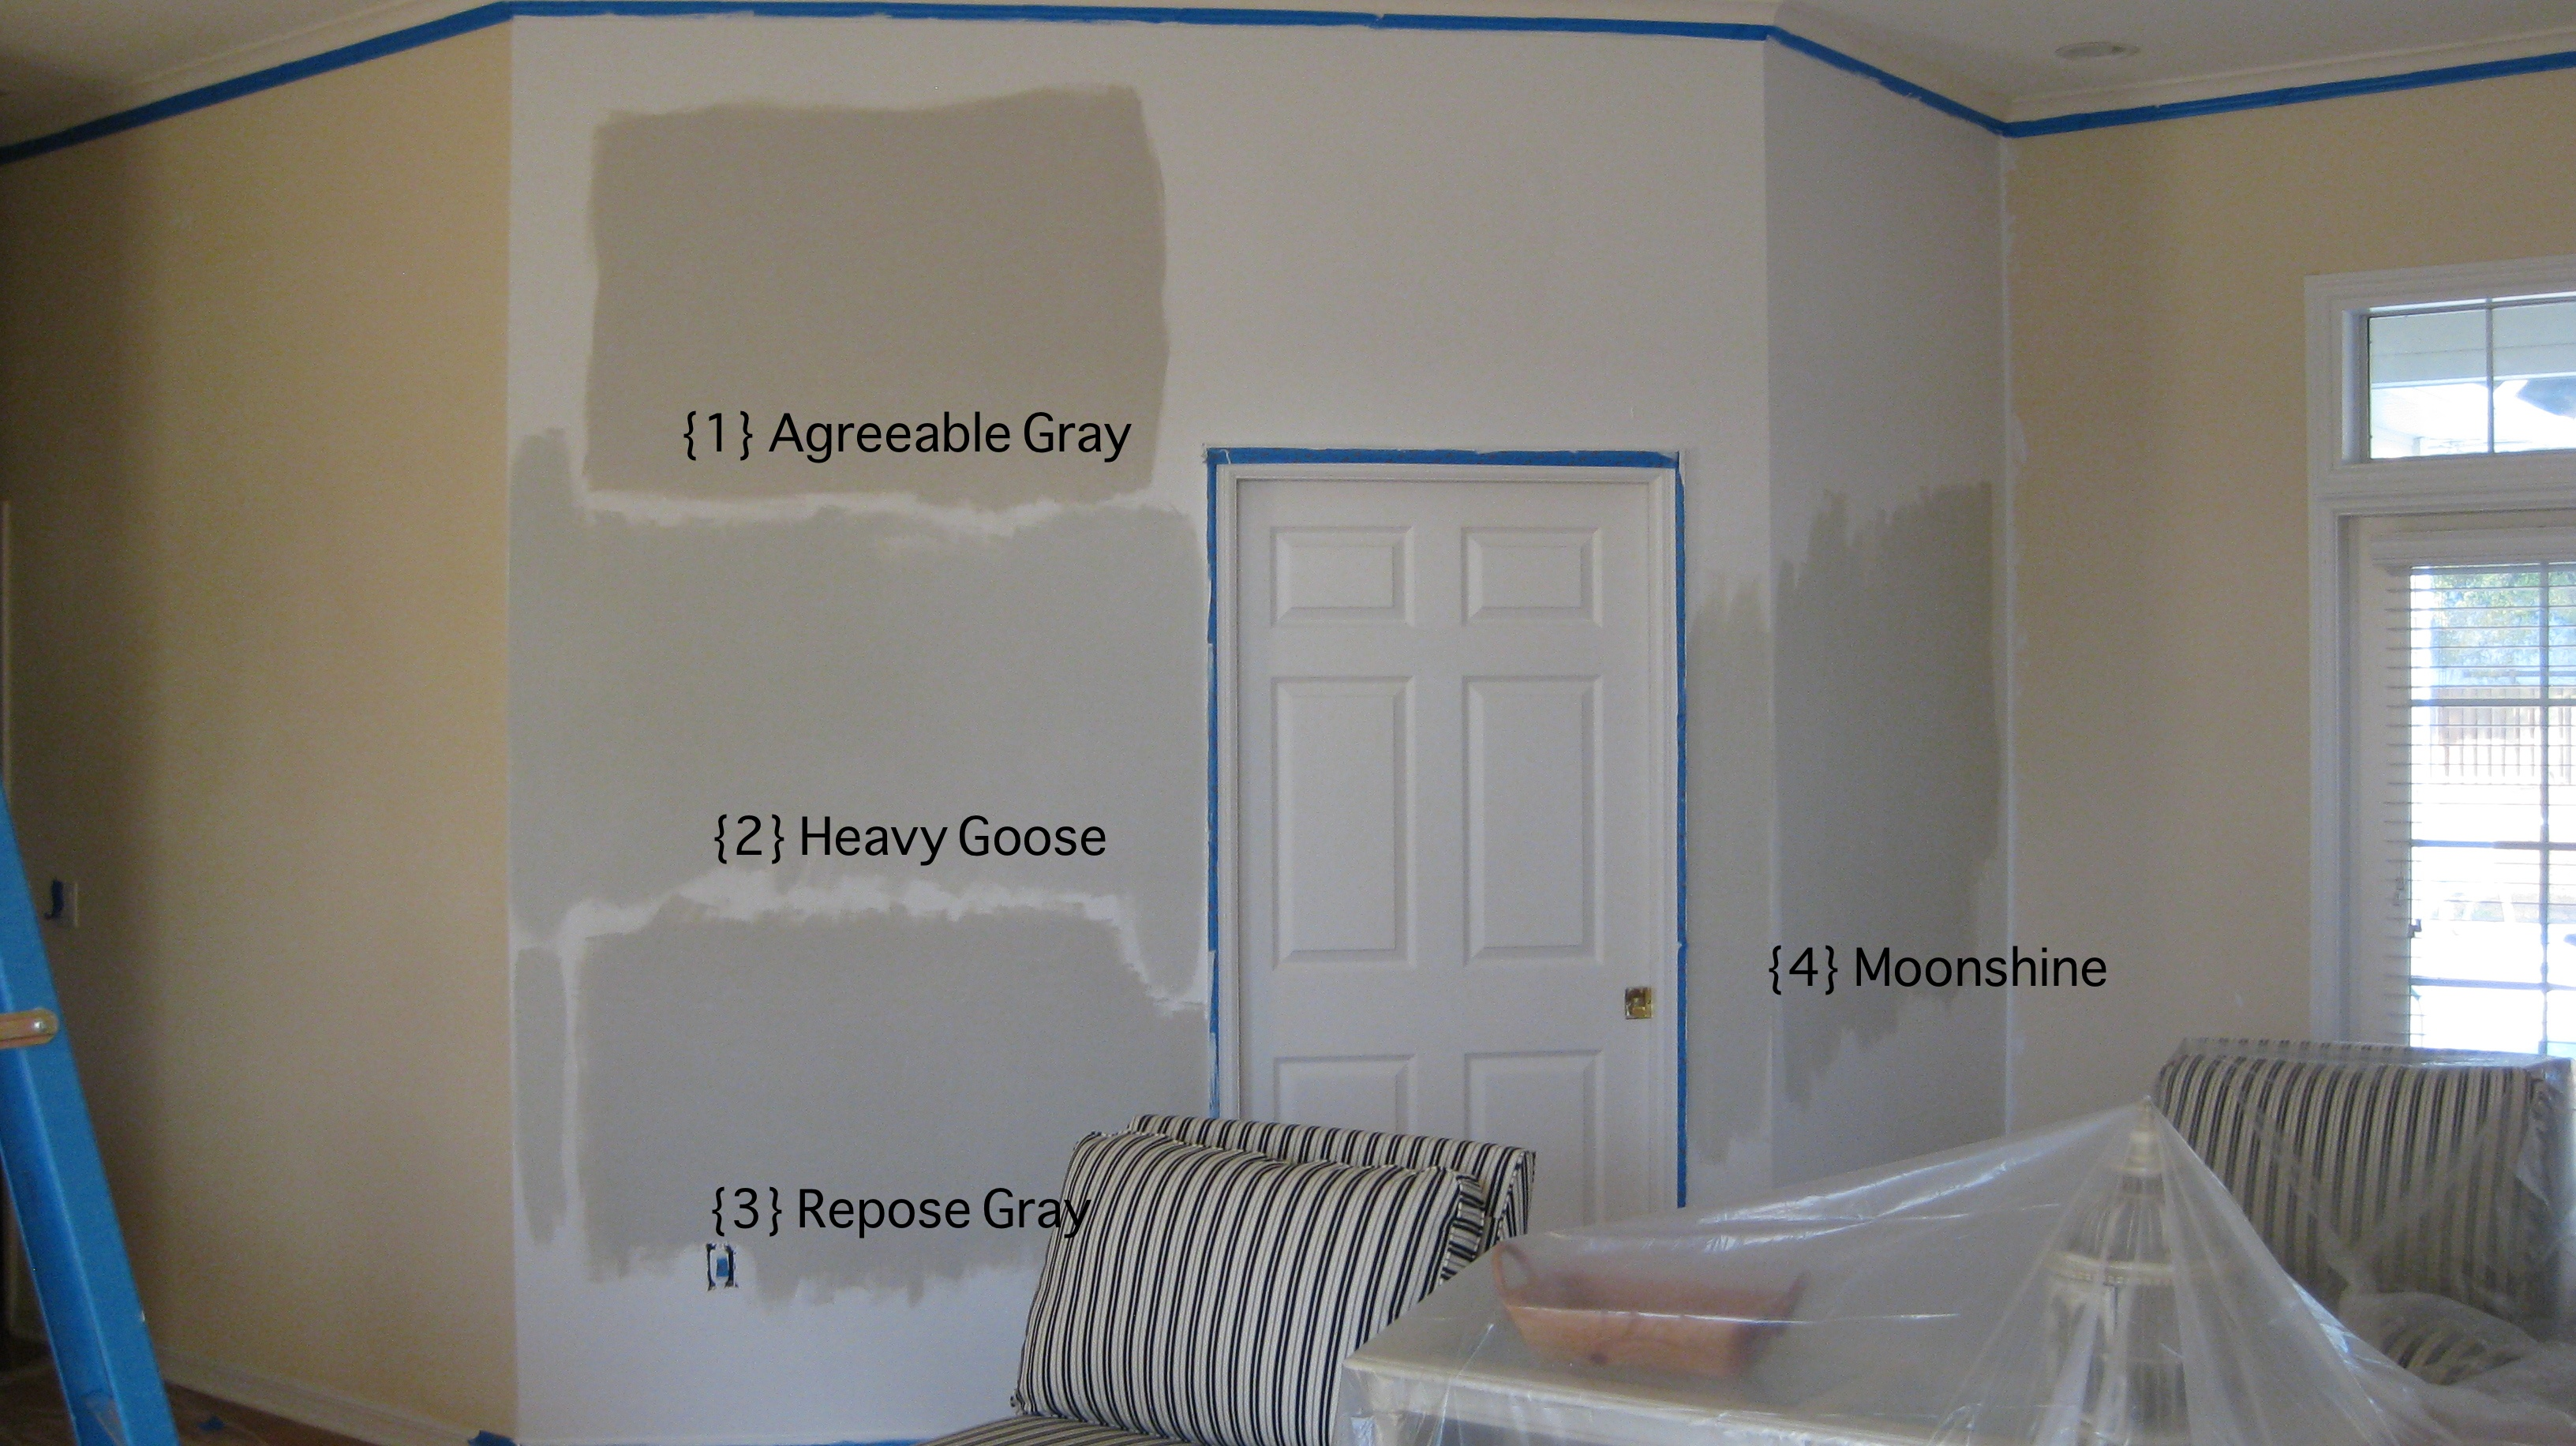 Sherwin Williams Agreeable Gray And Moonshine By Bm Cb